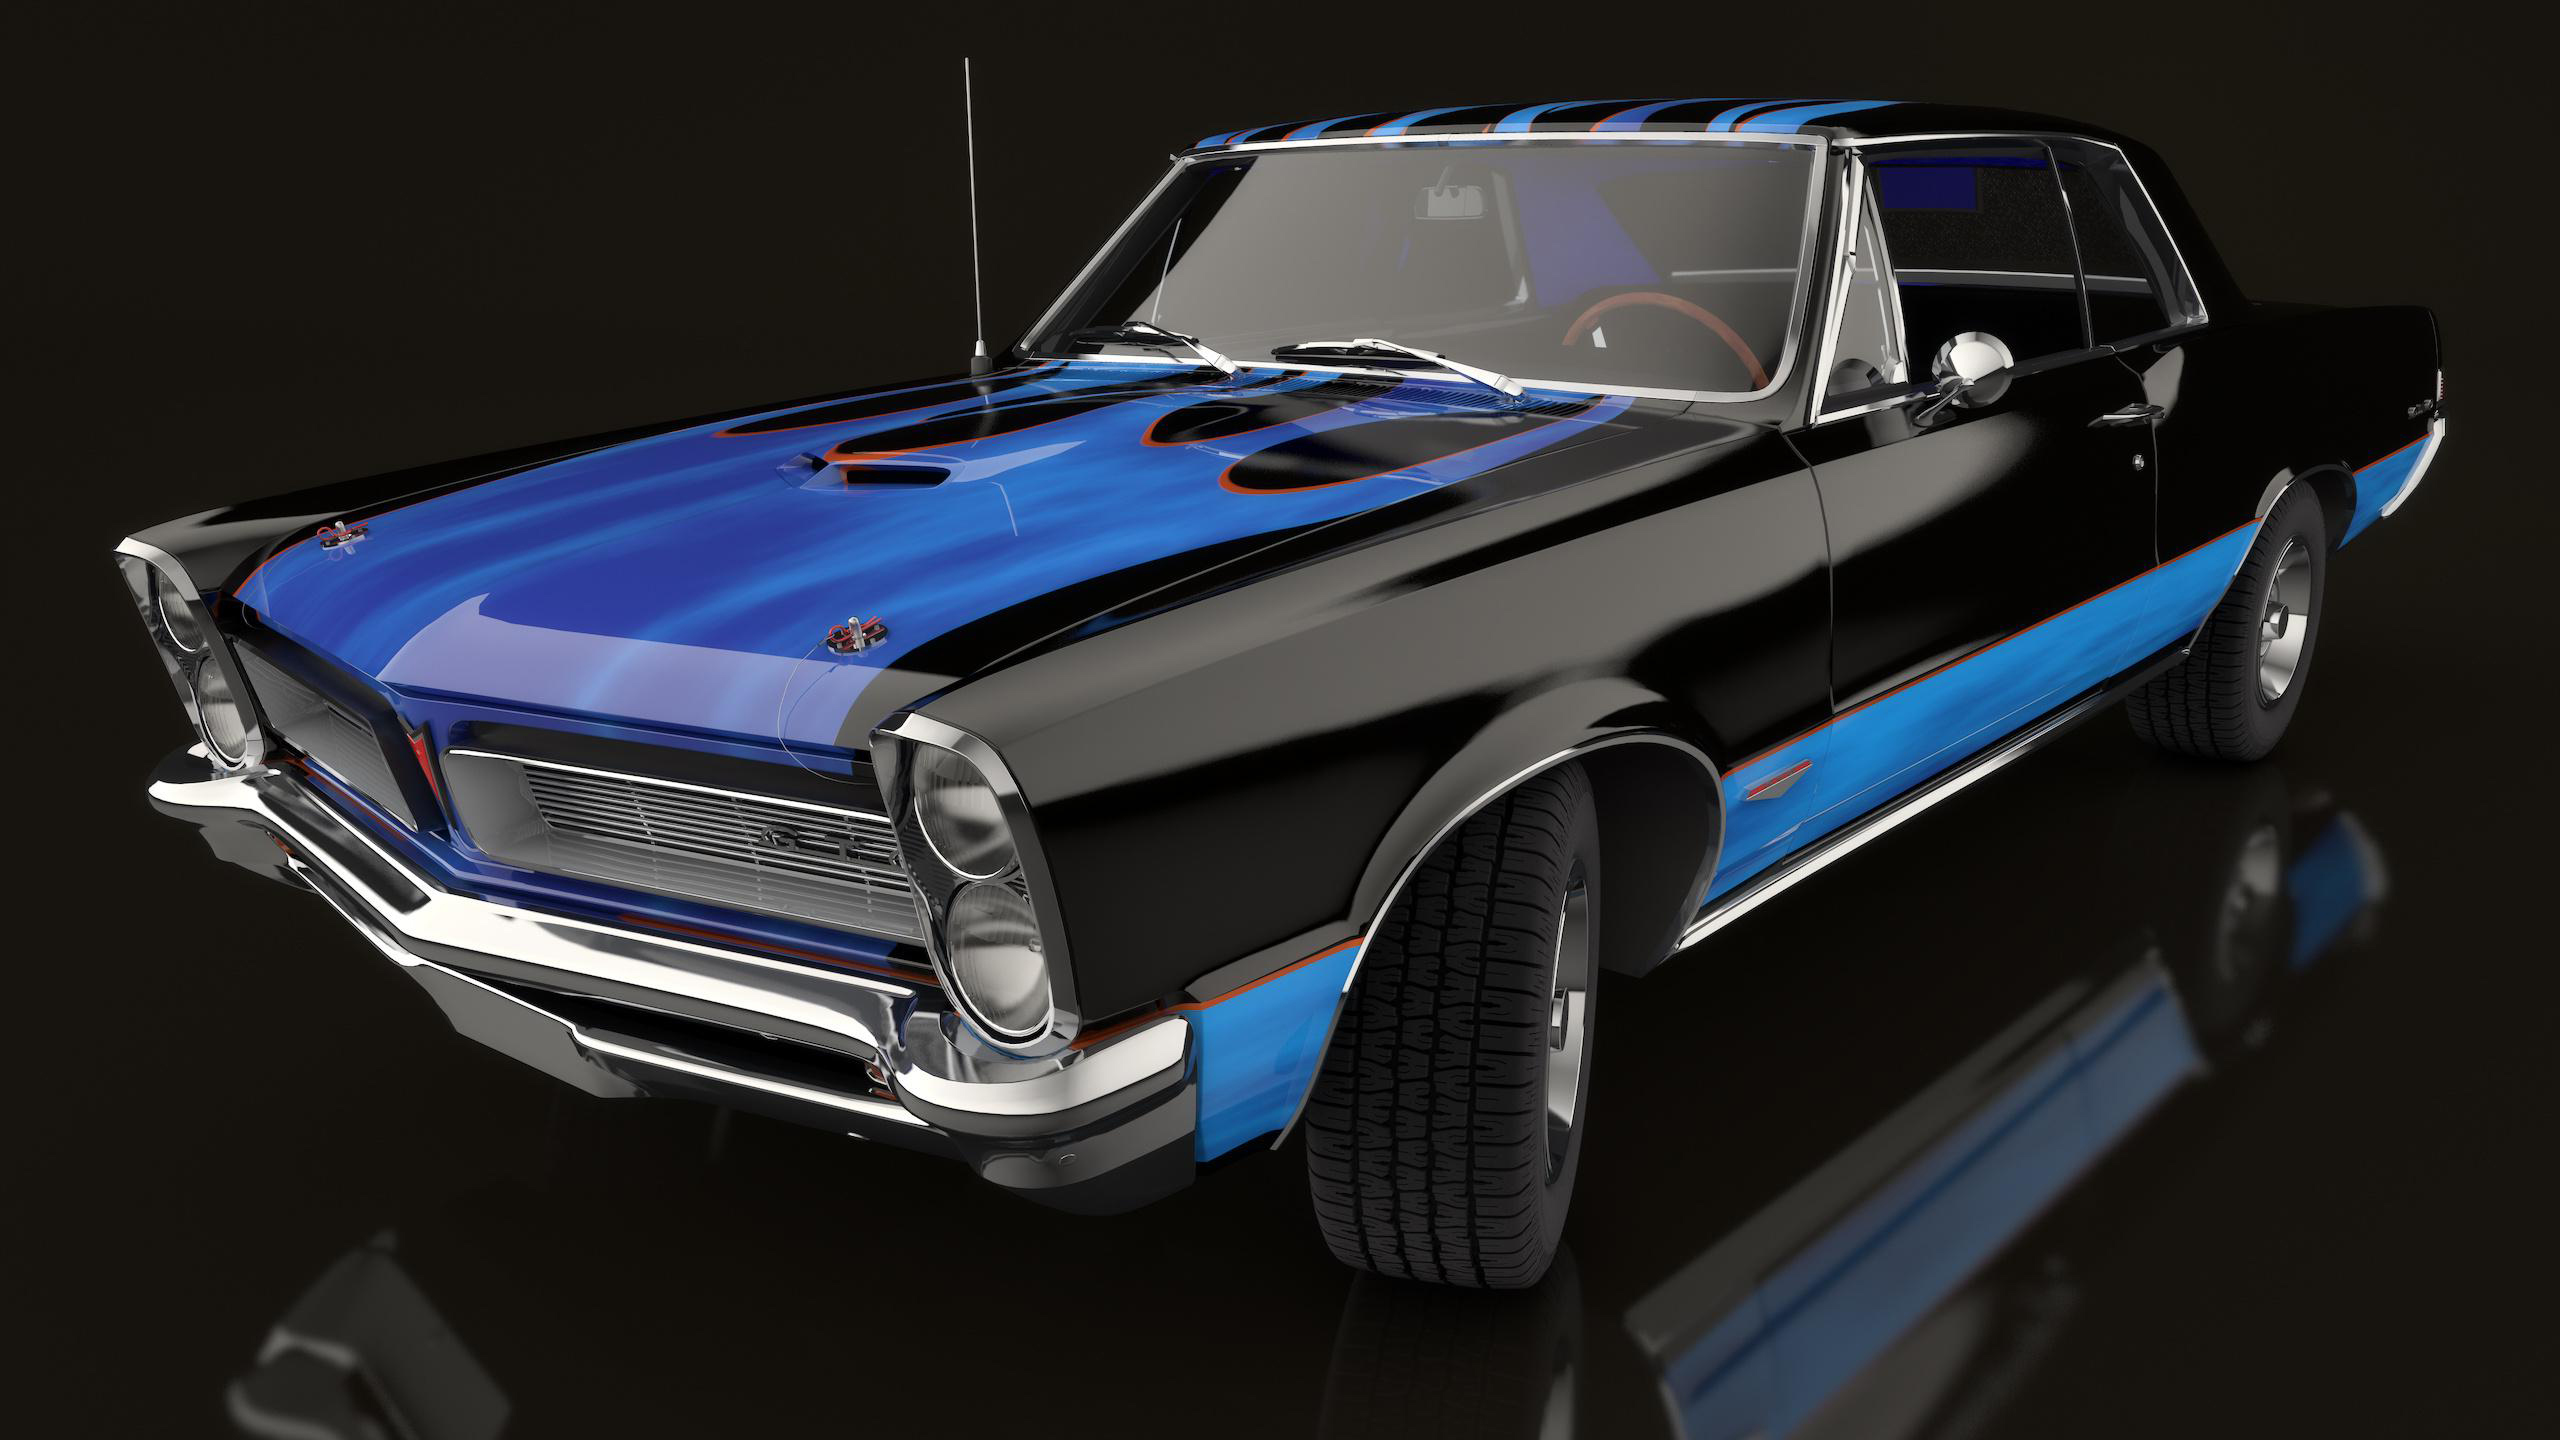 Classic Muscle Cars Black Wallpaper All About Gallery Car 2560x1440